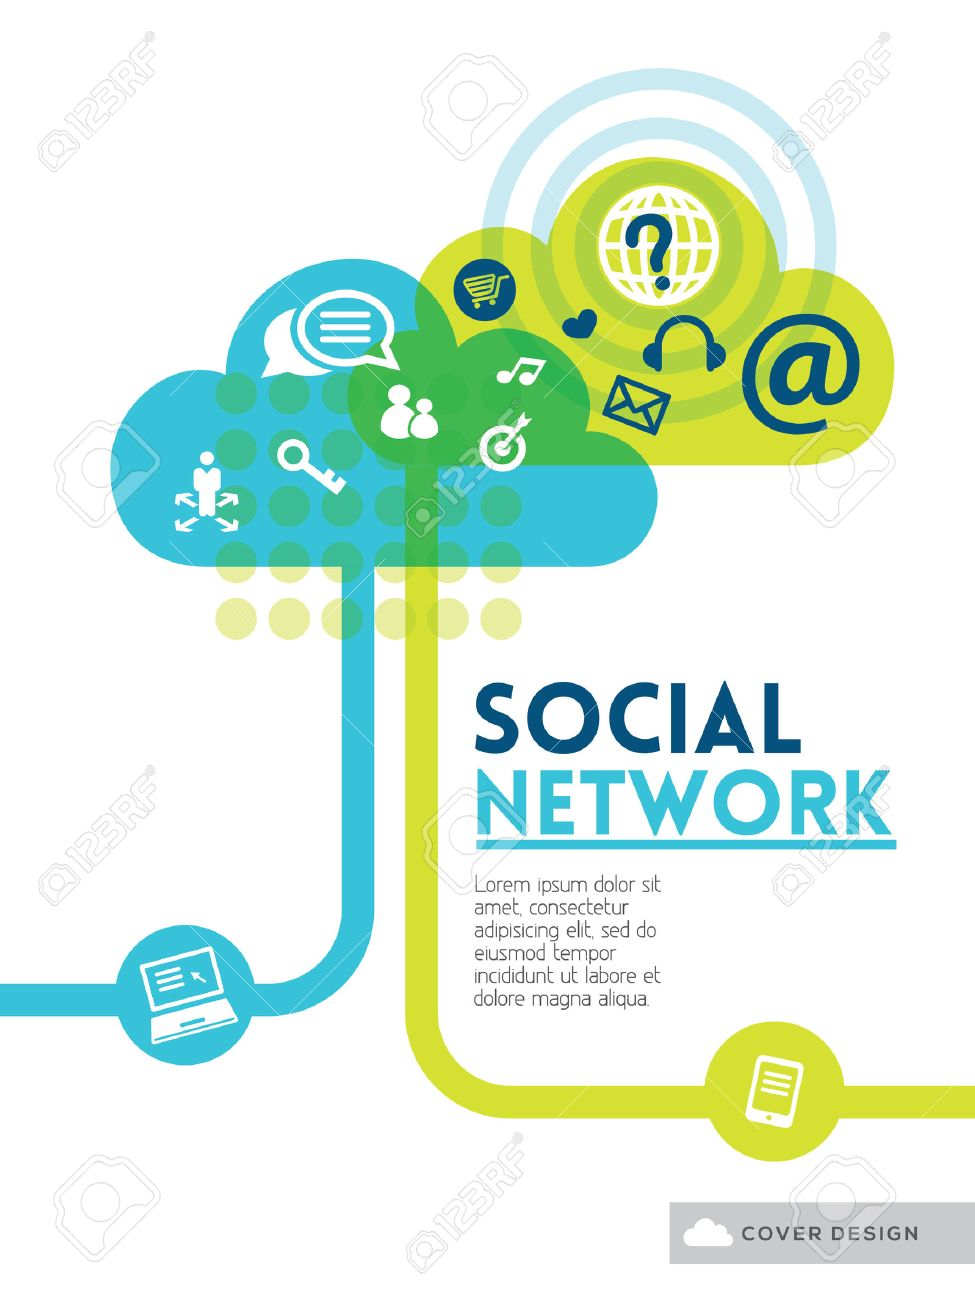 Cloud Social Media Network concept background design layout for poster flyer cover brochure Stock Vector - 22774263